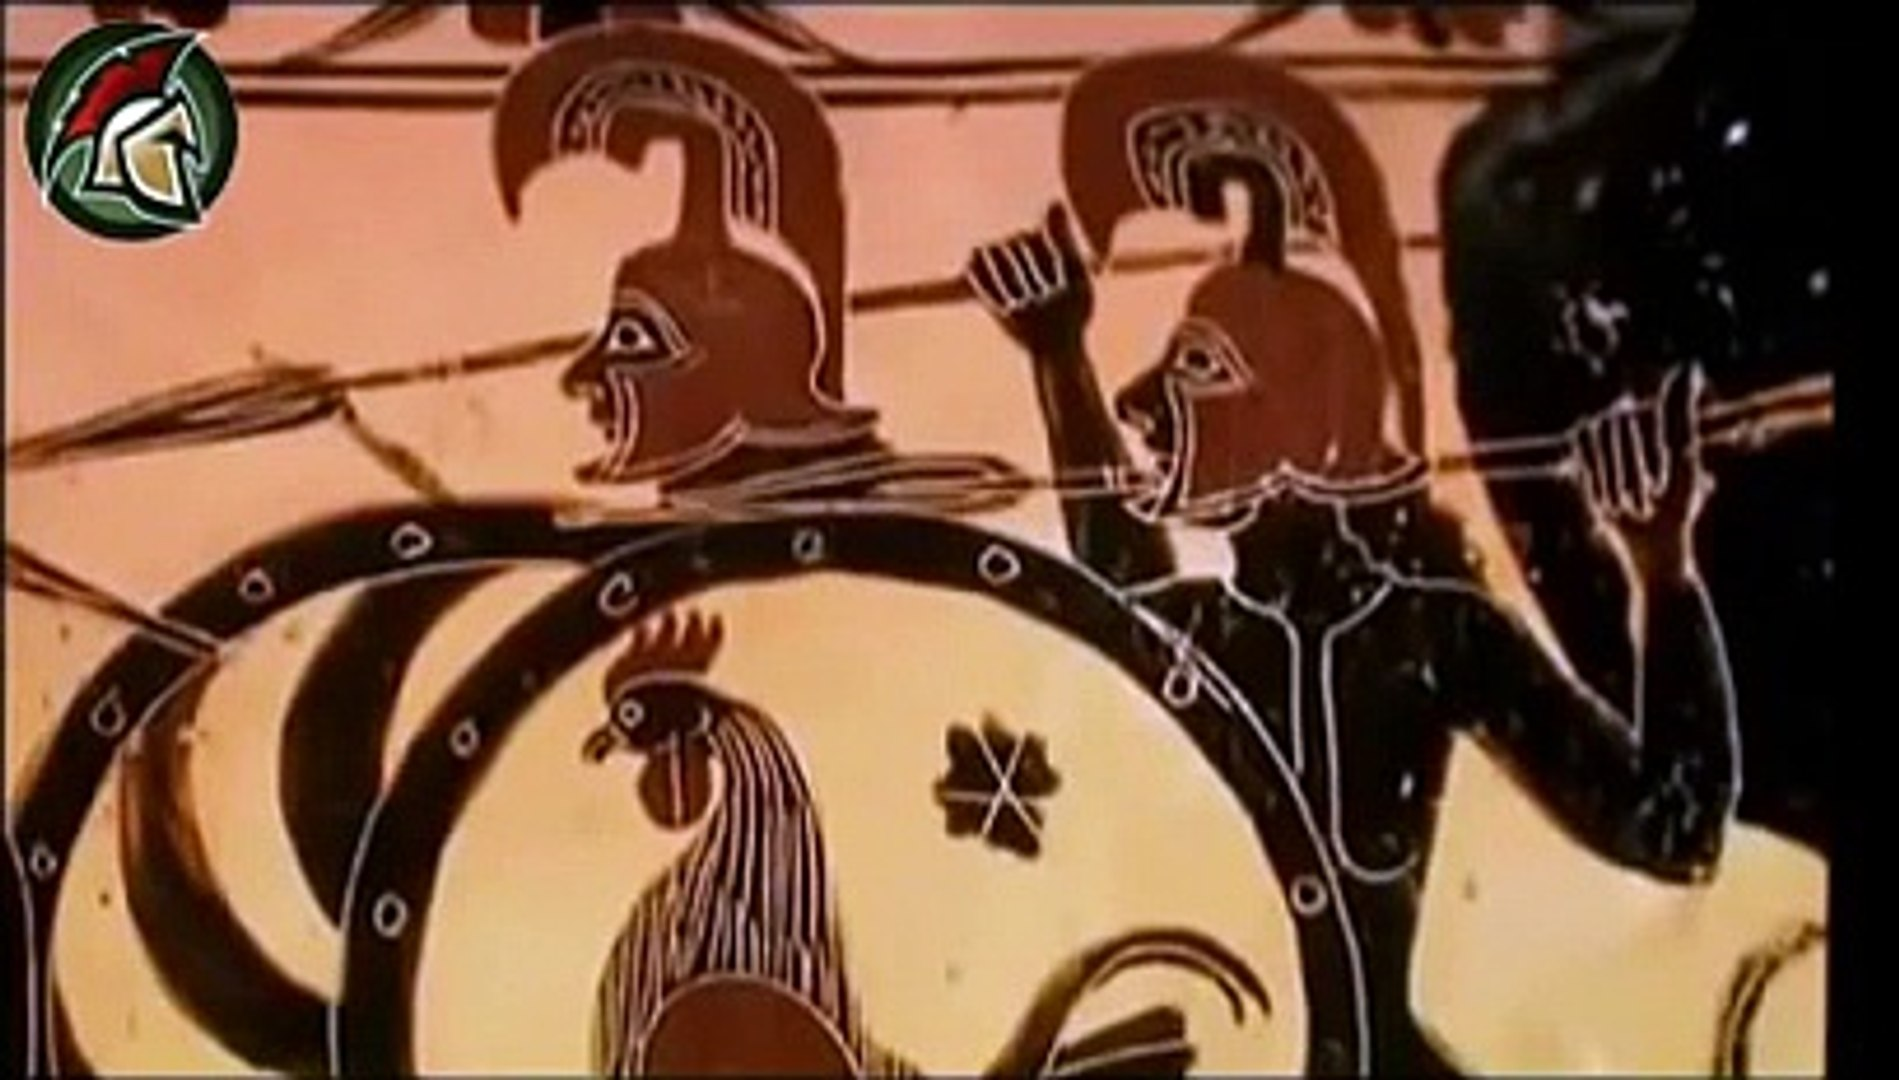 Documentary Ancient Greeks Democracy BBC Documentary National Geographic History Channel